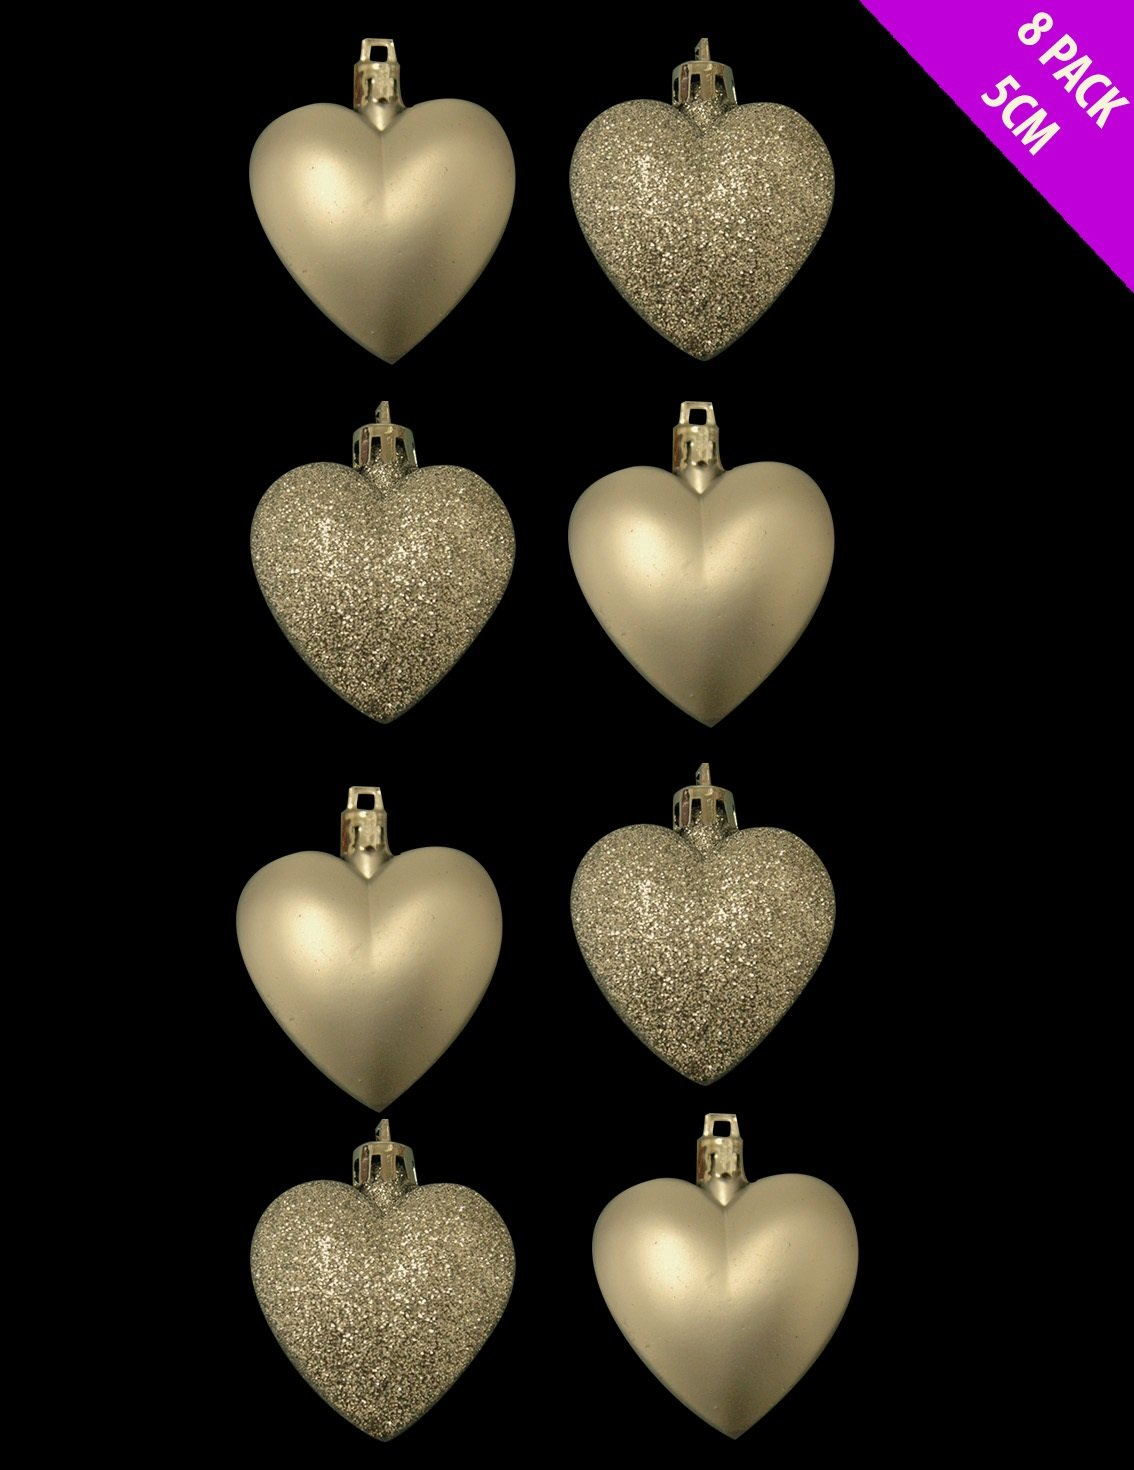 8 x 5cm CHAMPAGNE GOLD Glitter + Matt Heart Shaped Christmas Tree Baubles CHRISTMASSHOP